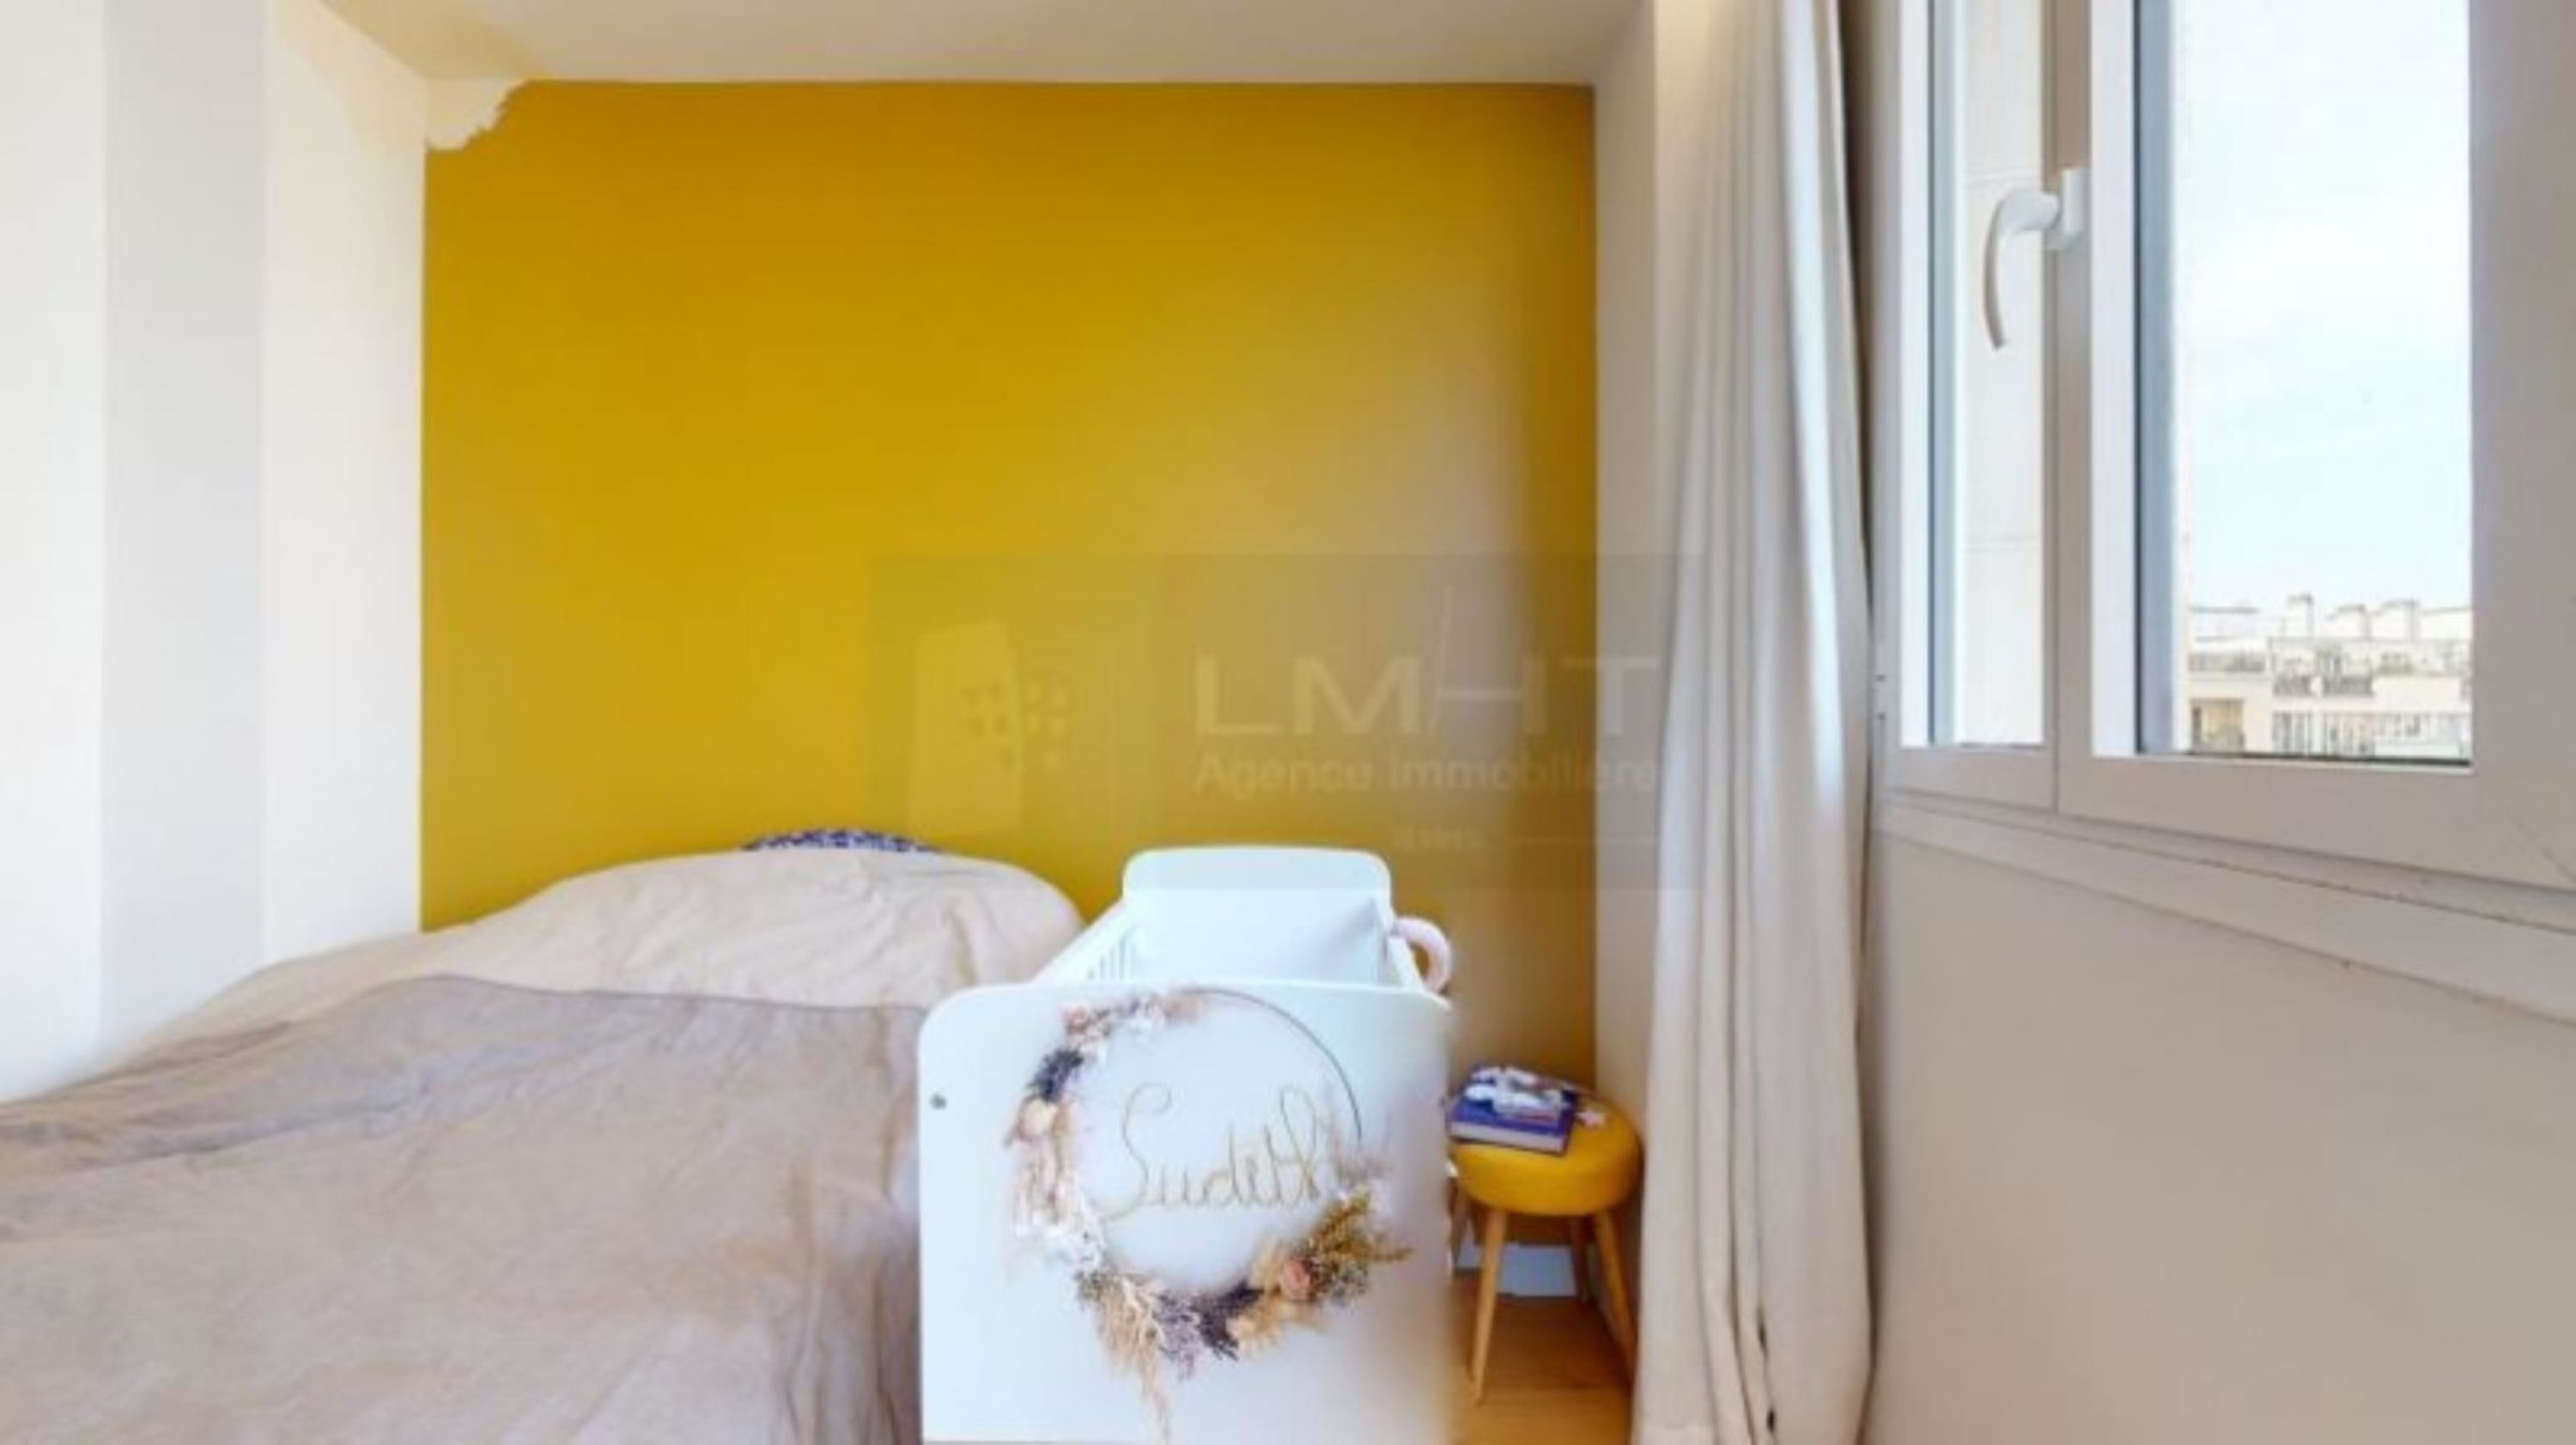 agence immobilière sevres 92 le chesnay 78 achat vente location appartement maison immobilier LMHT ANF GDNVBLPI